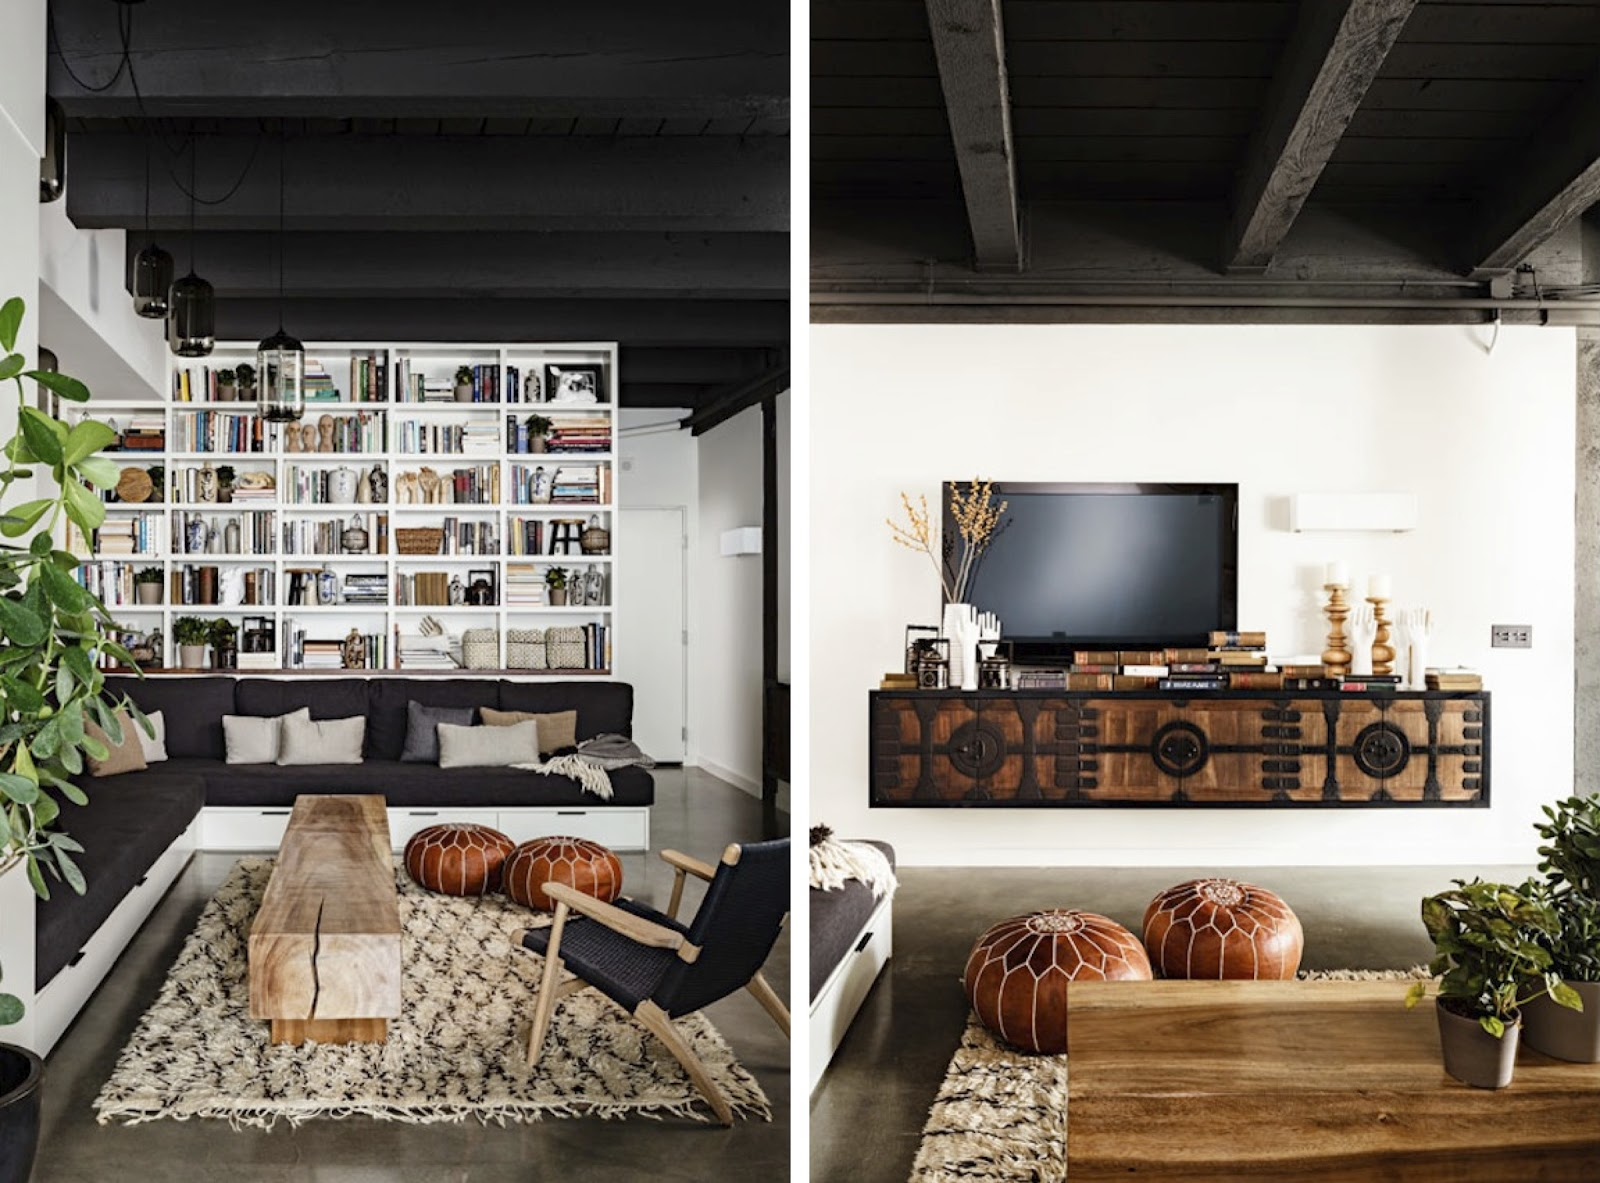 Design Ideas For A Loft Apartment